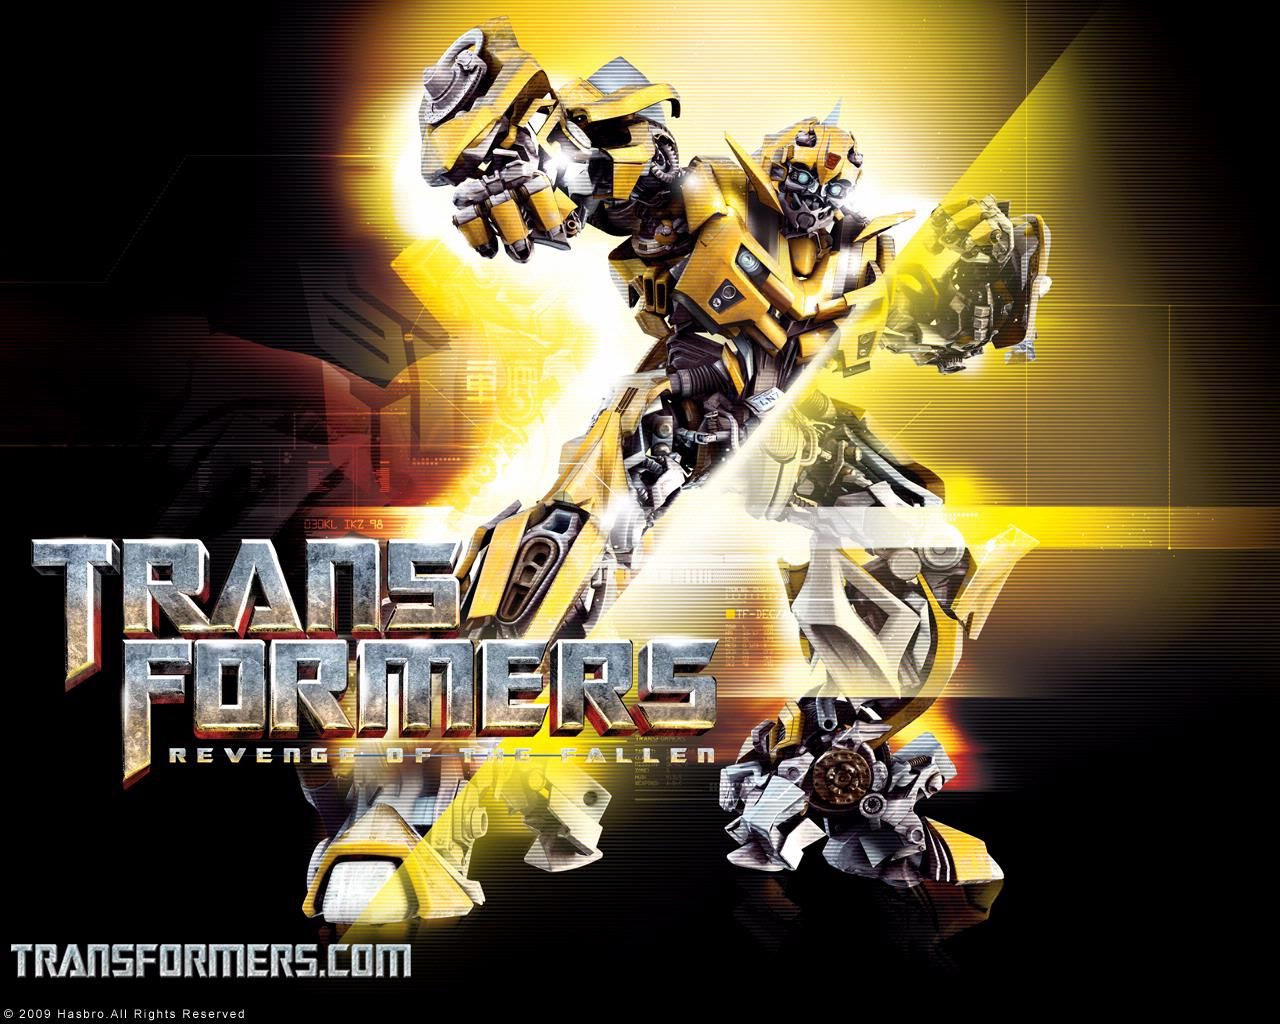 transformers all of them movies worth watching pinterest wallpaper. Black Bedroom Furniture Sets. Home Design Ideas